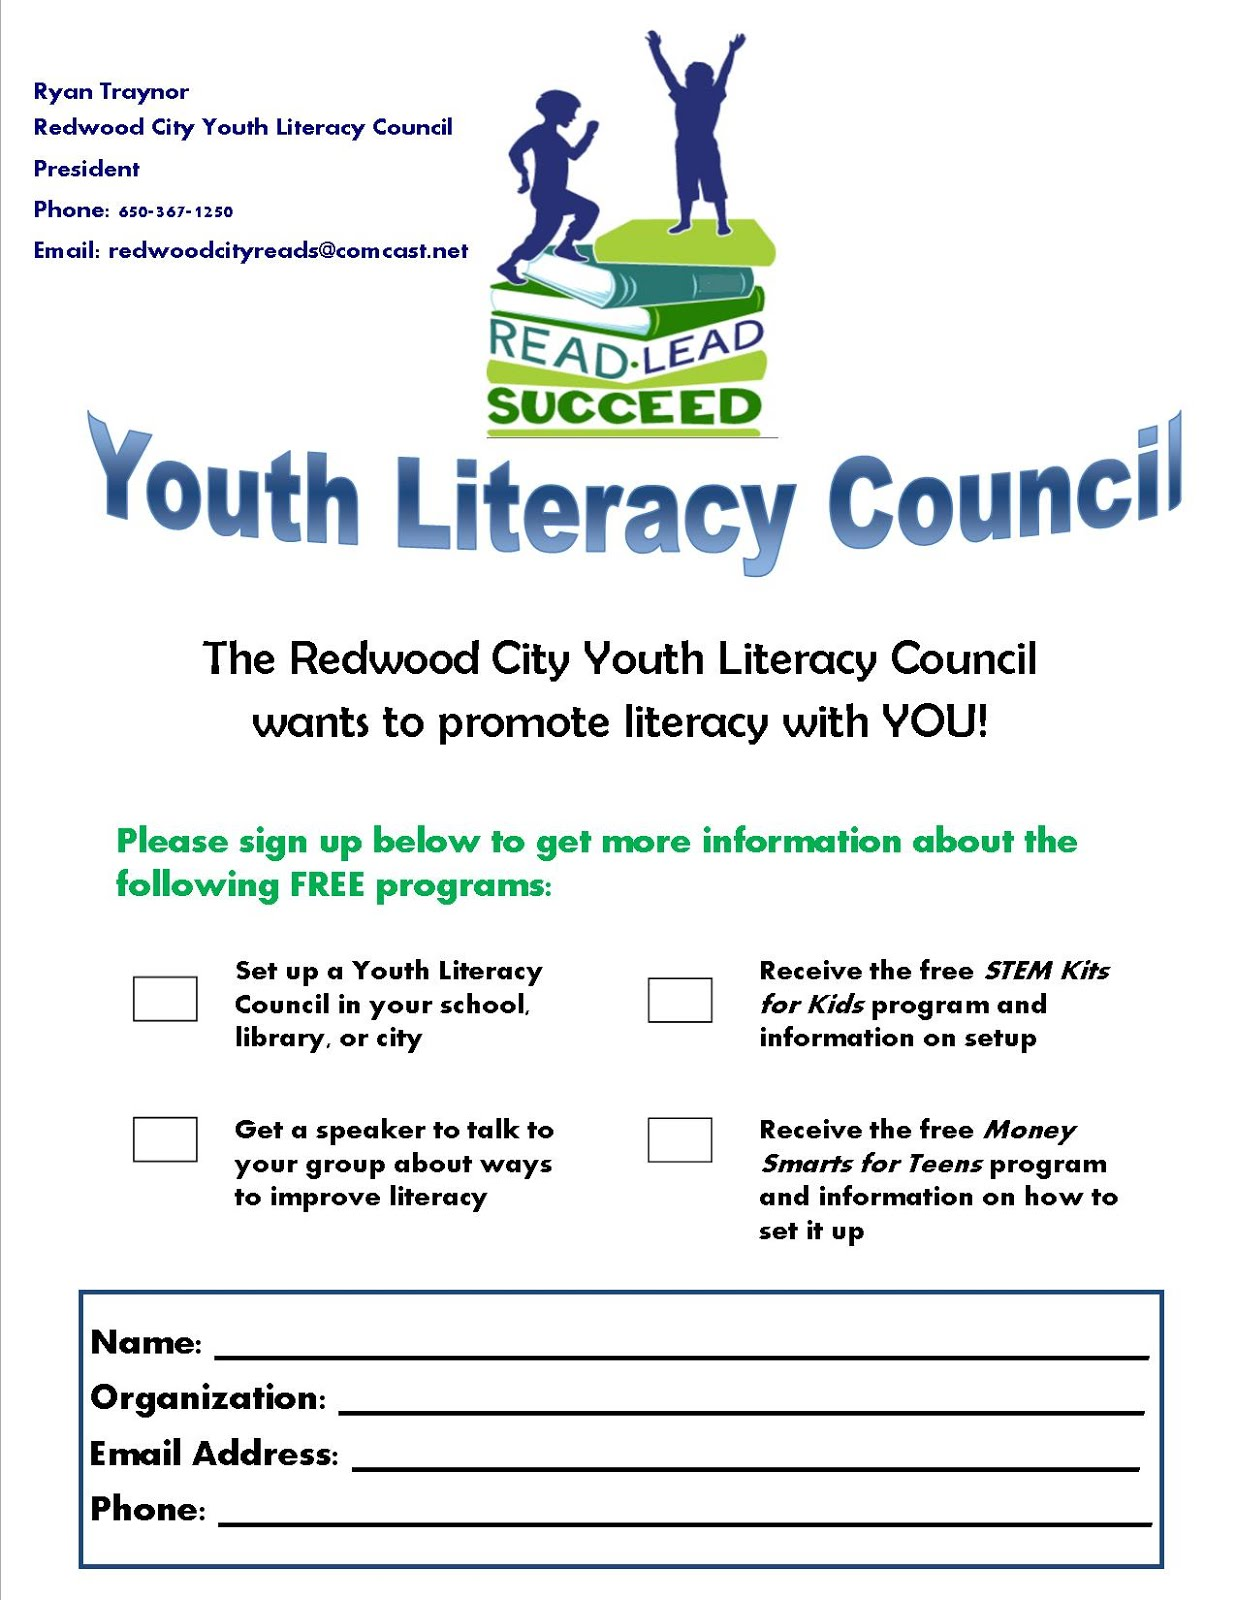 Interested in the Council's Programs for your Area?